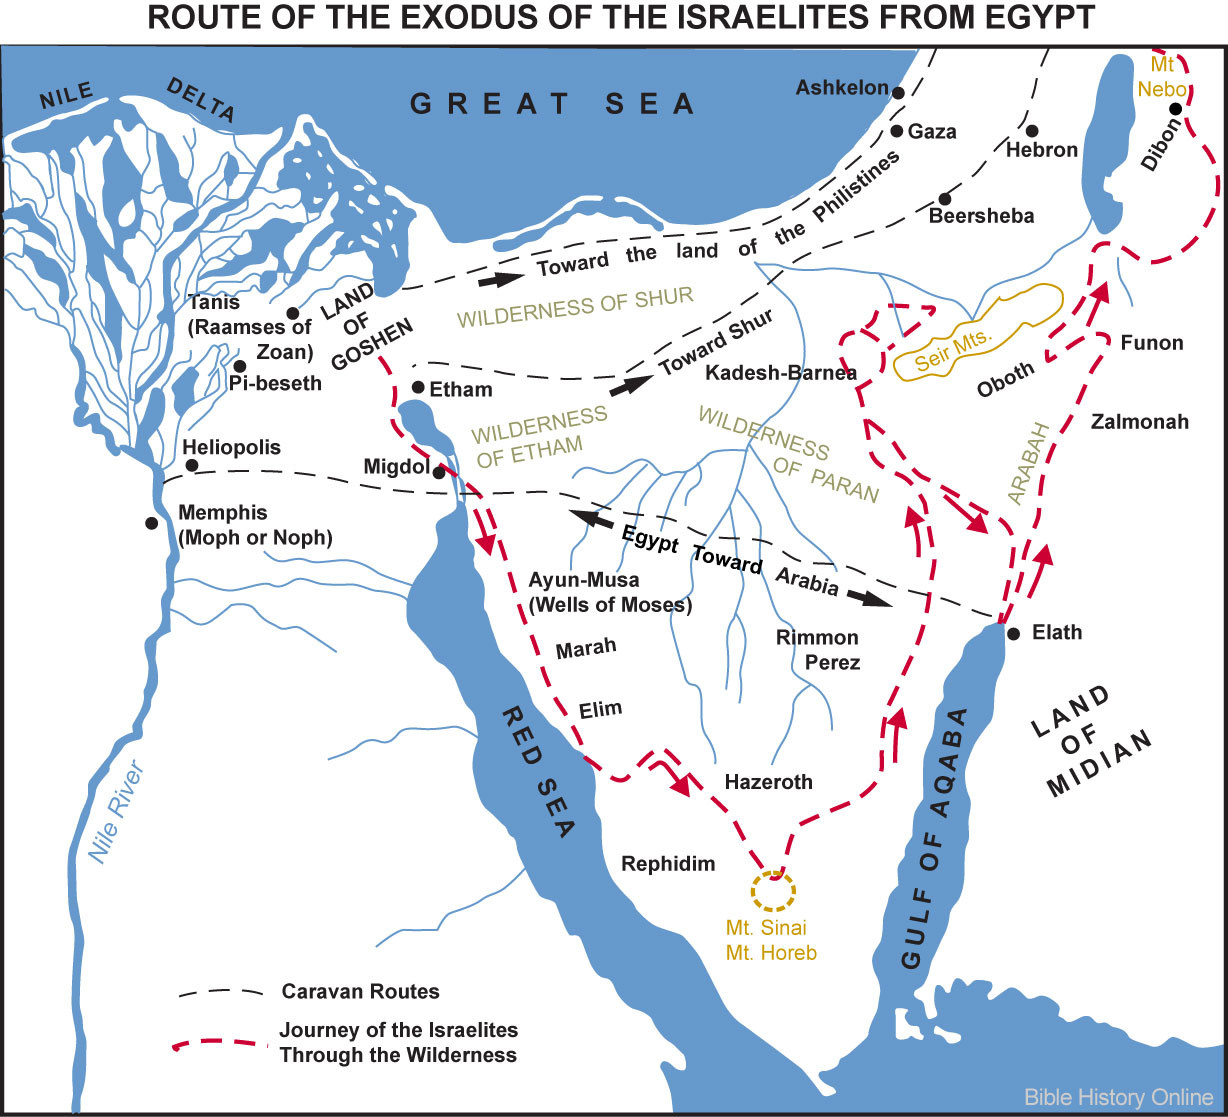 Map of the Route of the Exodus of the Israelites from Egypt Bible